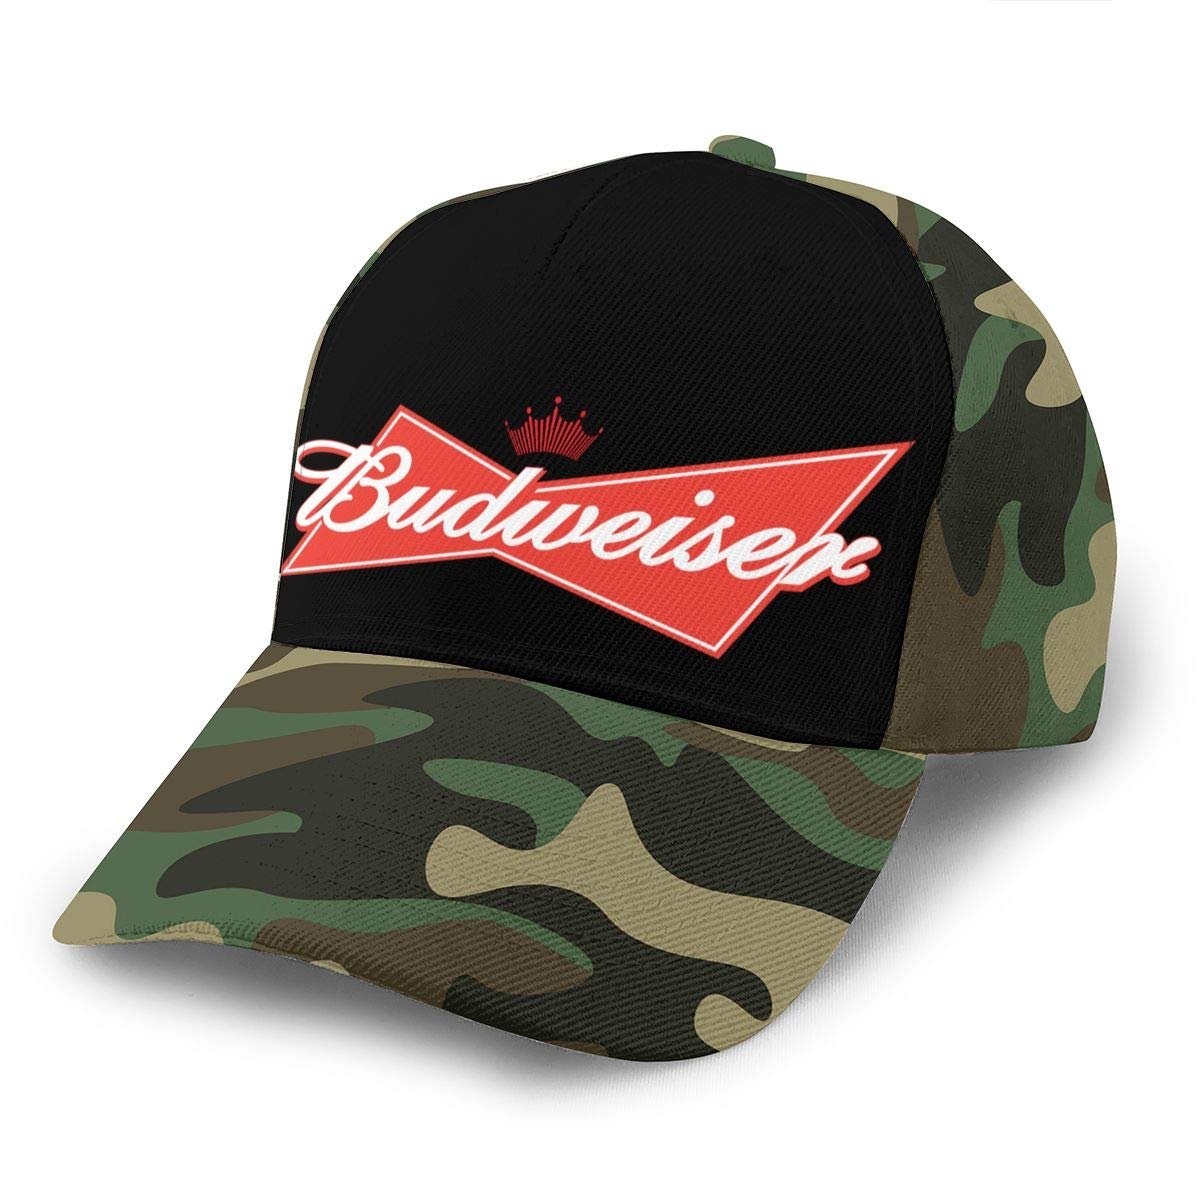 Adjustable Women Men Budweiser-Logo Print Baseball Cap Flat Brim Cap Hats Hip Hop Snapback Sun Hat Boys Girls Moss Green by Apolonia